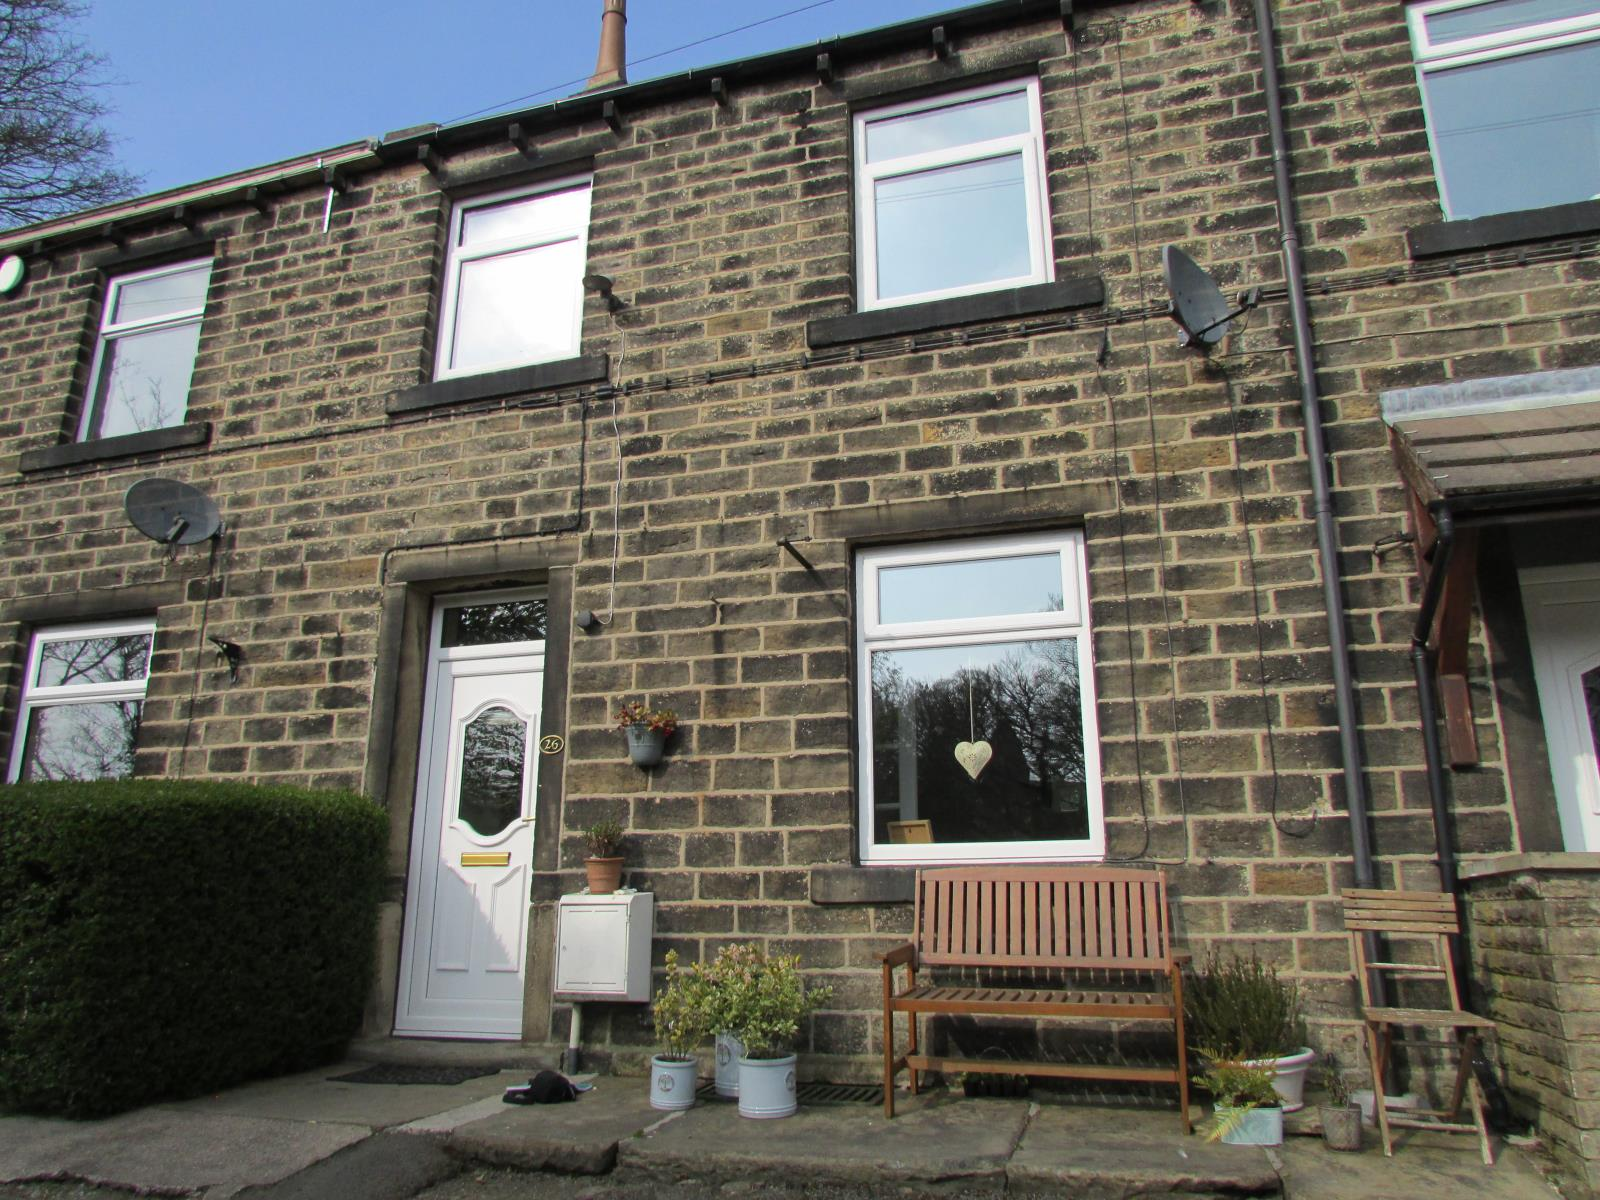 26 Penistone Road, New Mill, Holmfirth HD9 7JP